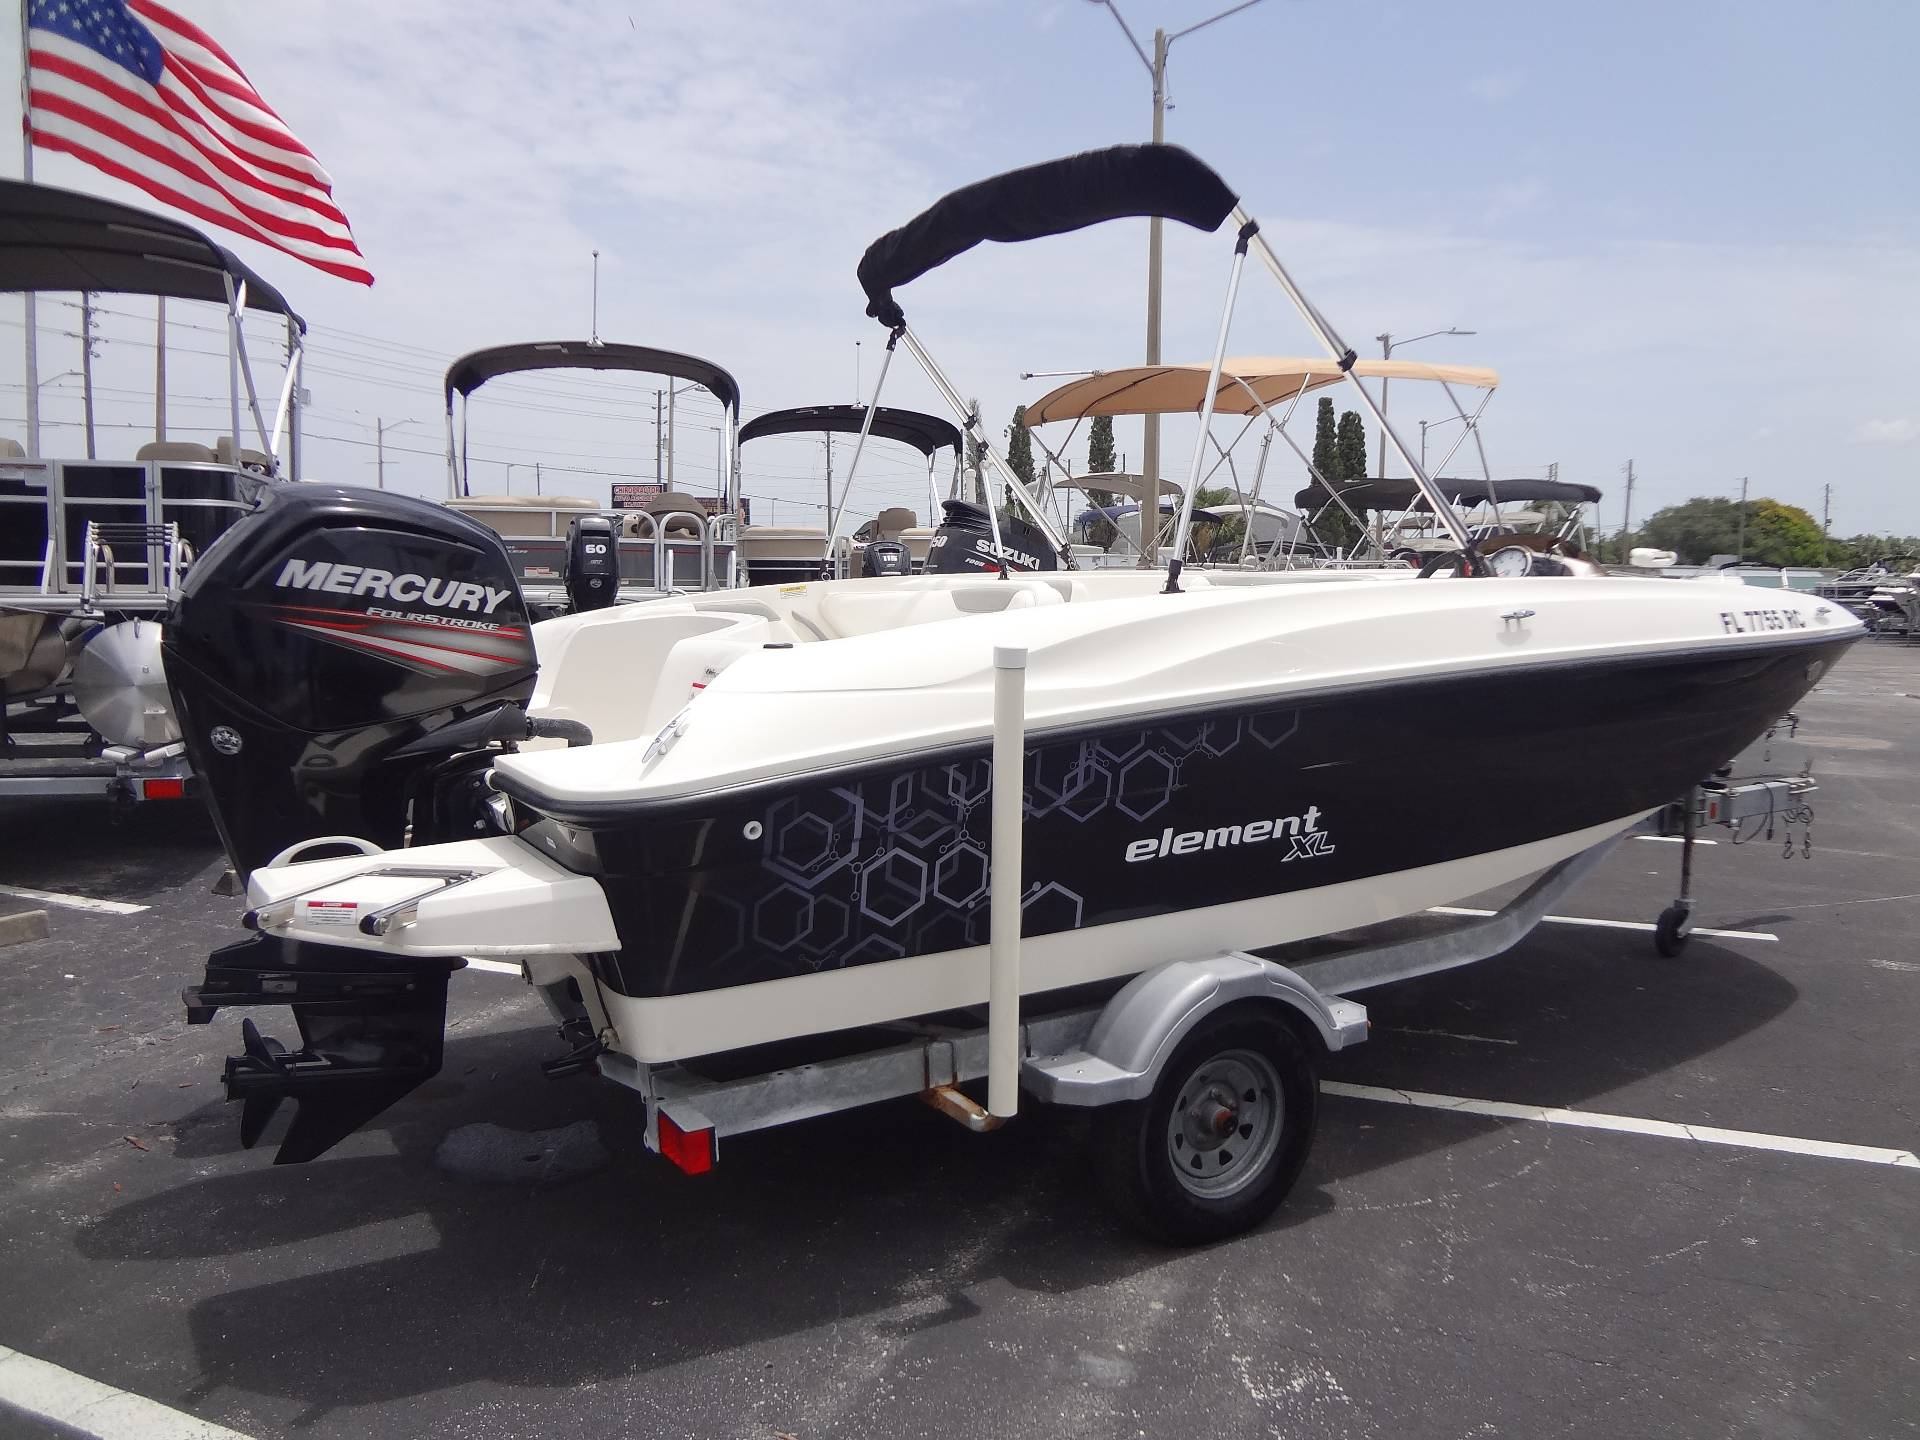 2016 Bayliner(Private) ELEMENT XL in Holiday, Florida - Photo 12